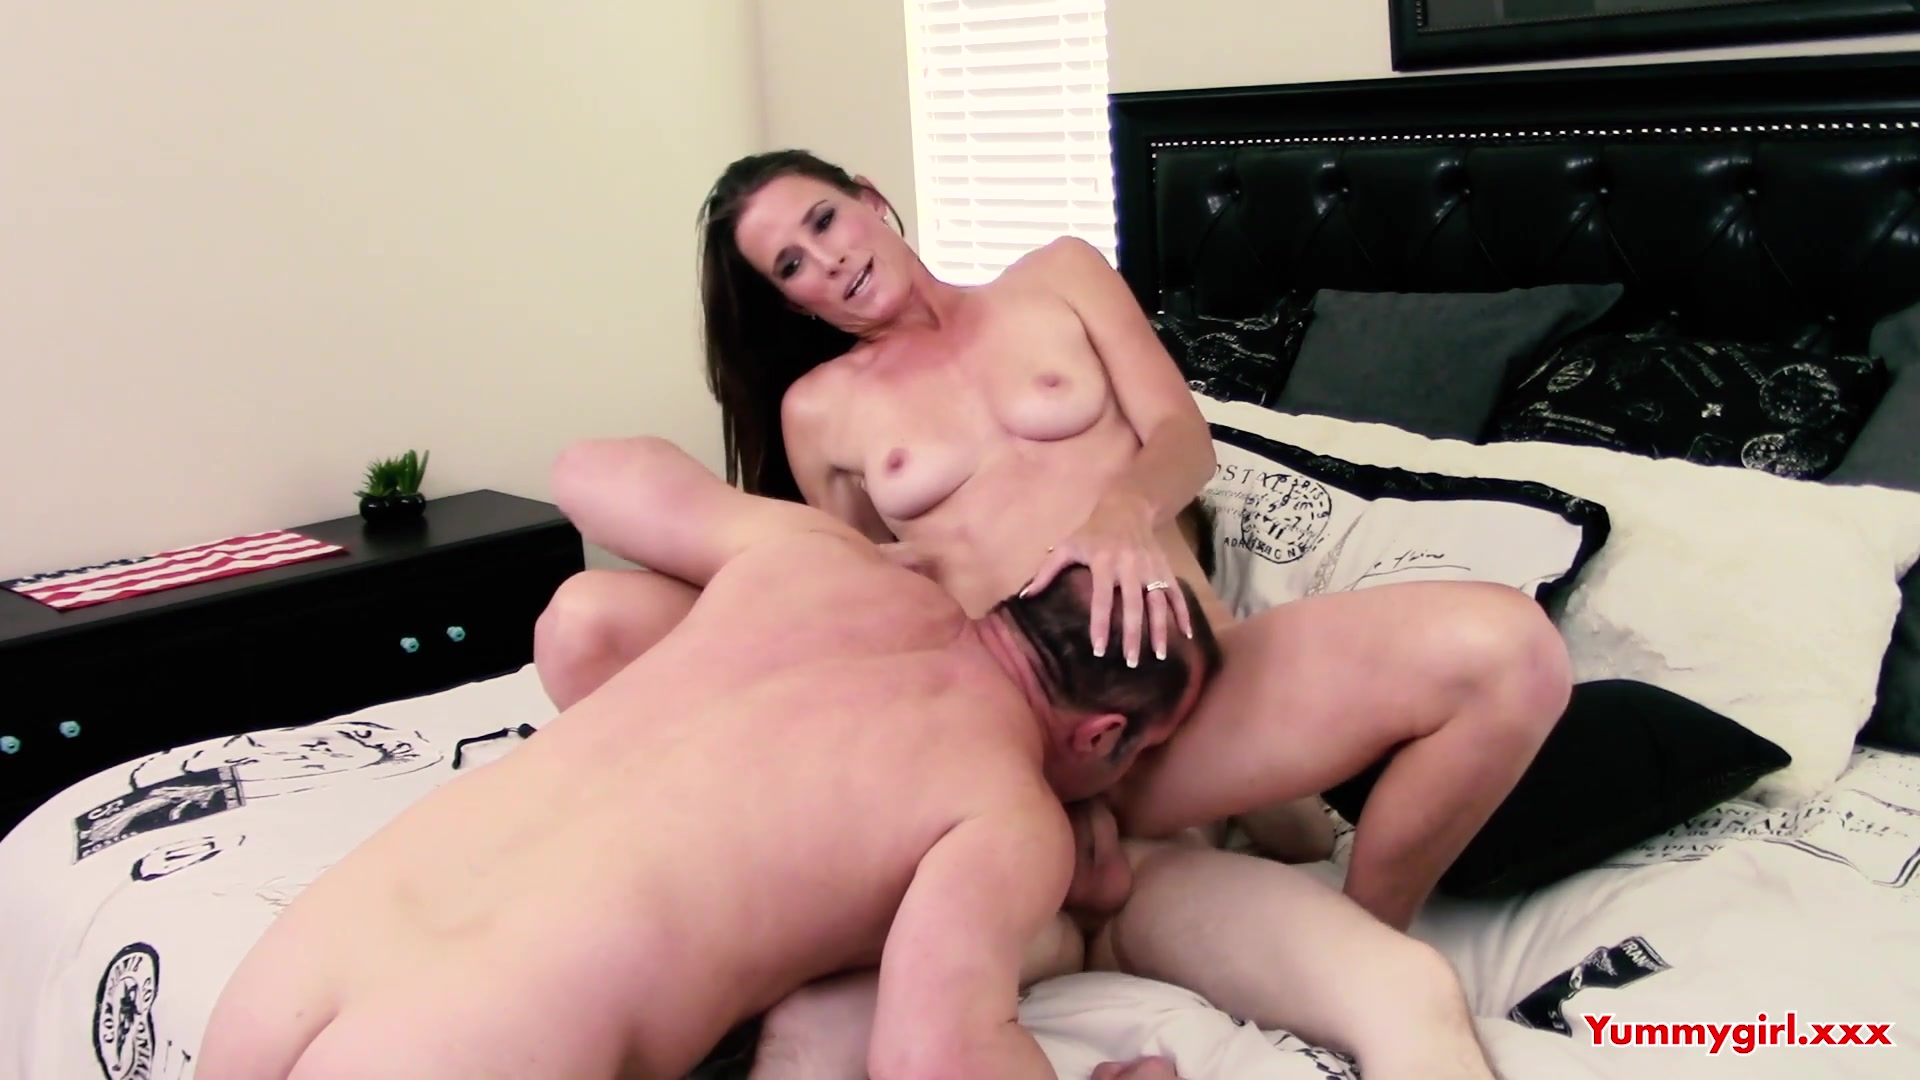 Mom Suckling Son Daughter